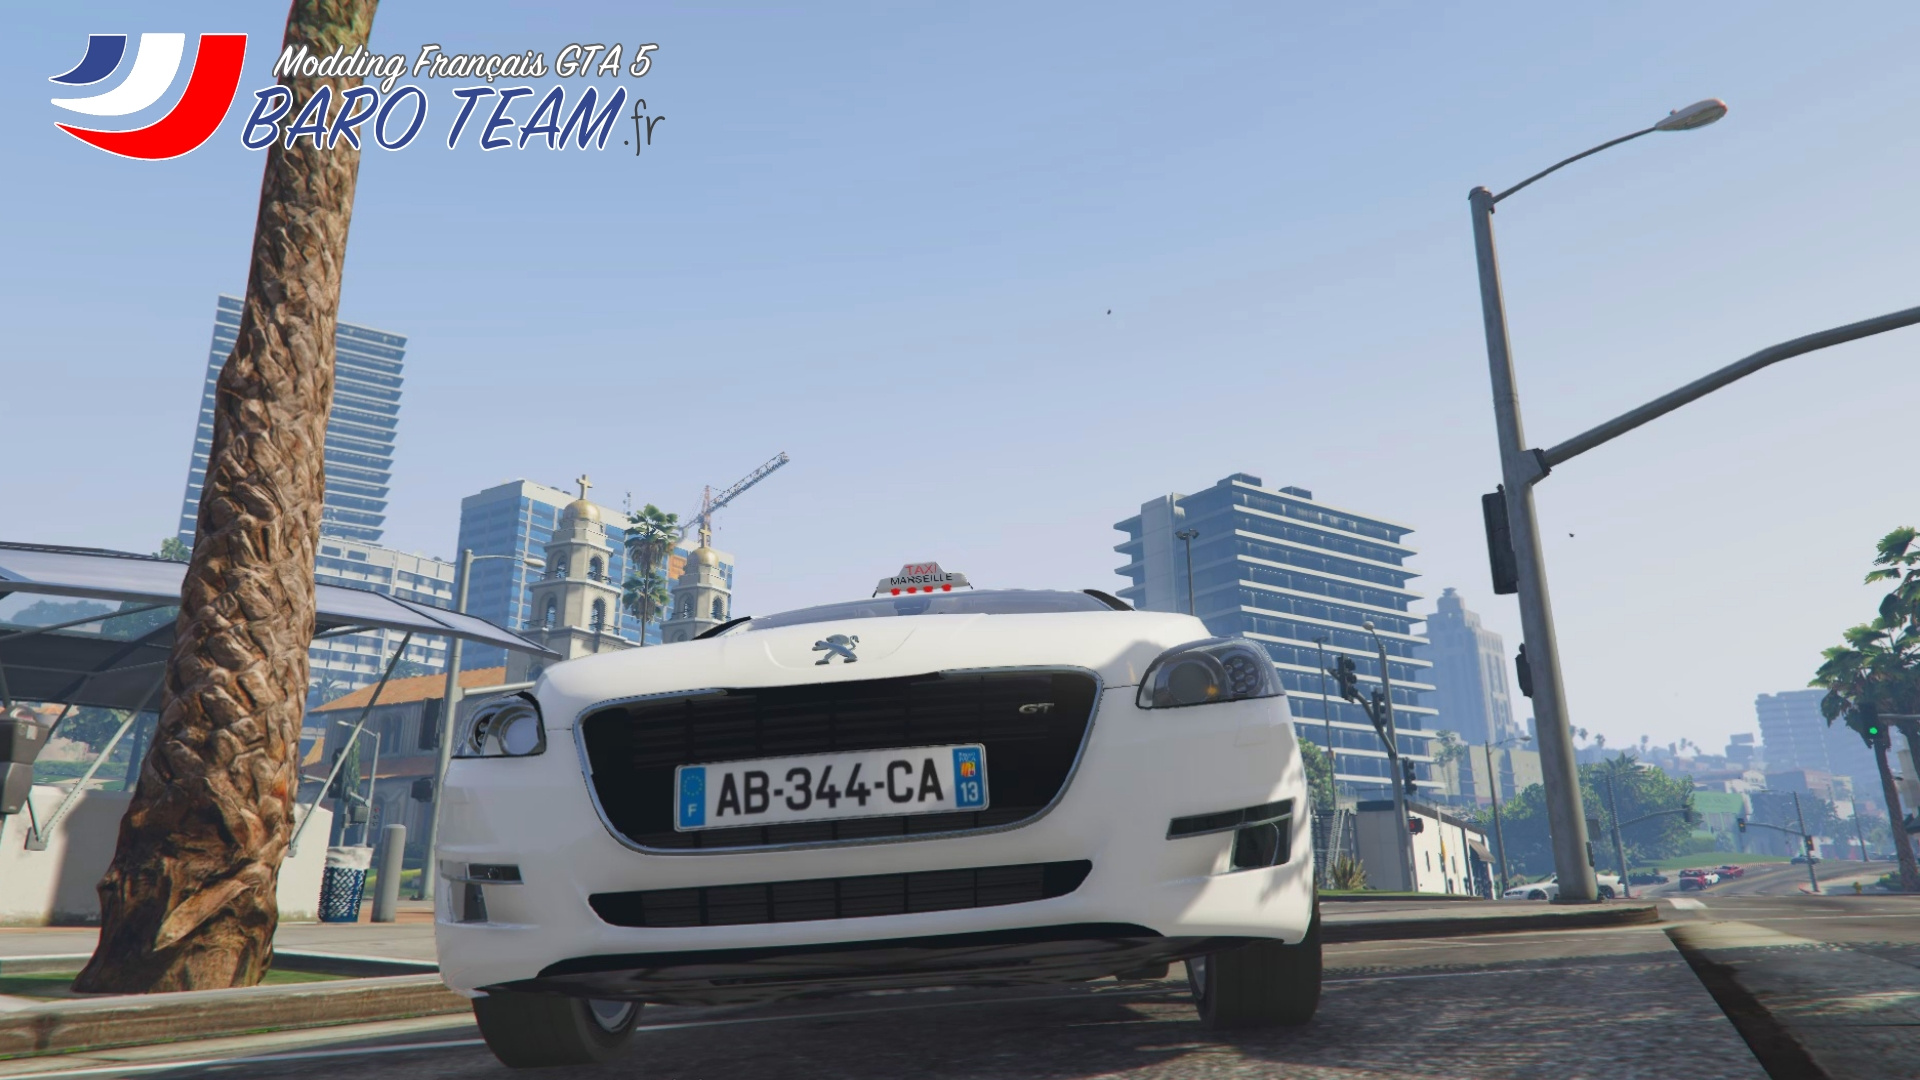 Taxi Francais Peugeot 508 besides Police Car Gta 5 Cheat Ps4 further Watch further Opinion The Highest Rated Gta V Mod Is A Car also Gta V 10 Voitures Sportives Copiees Monde Reel. on voltic gta 4